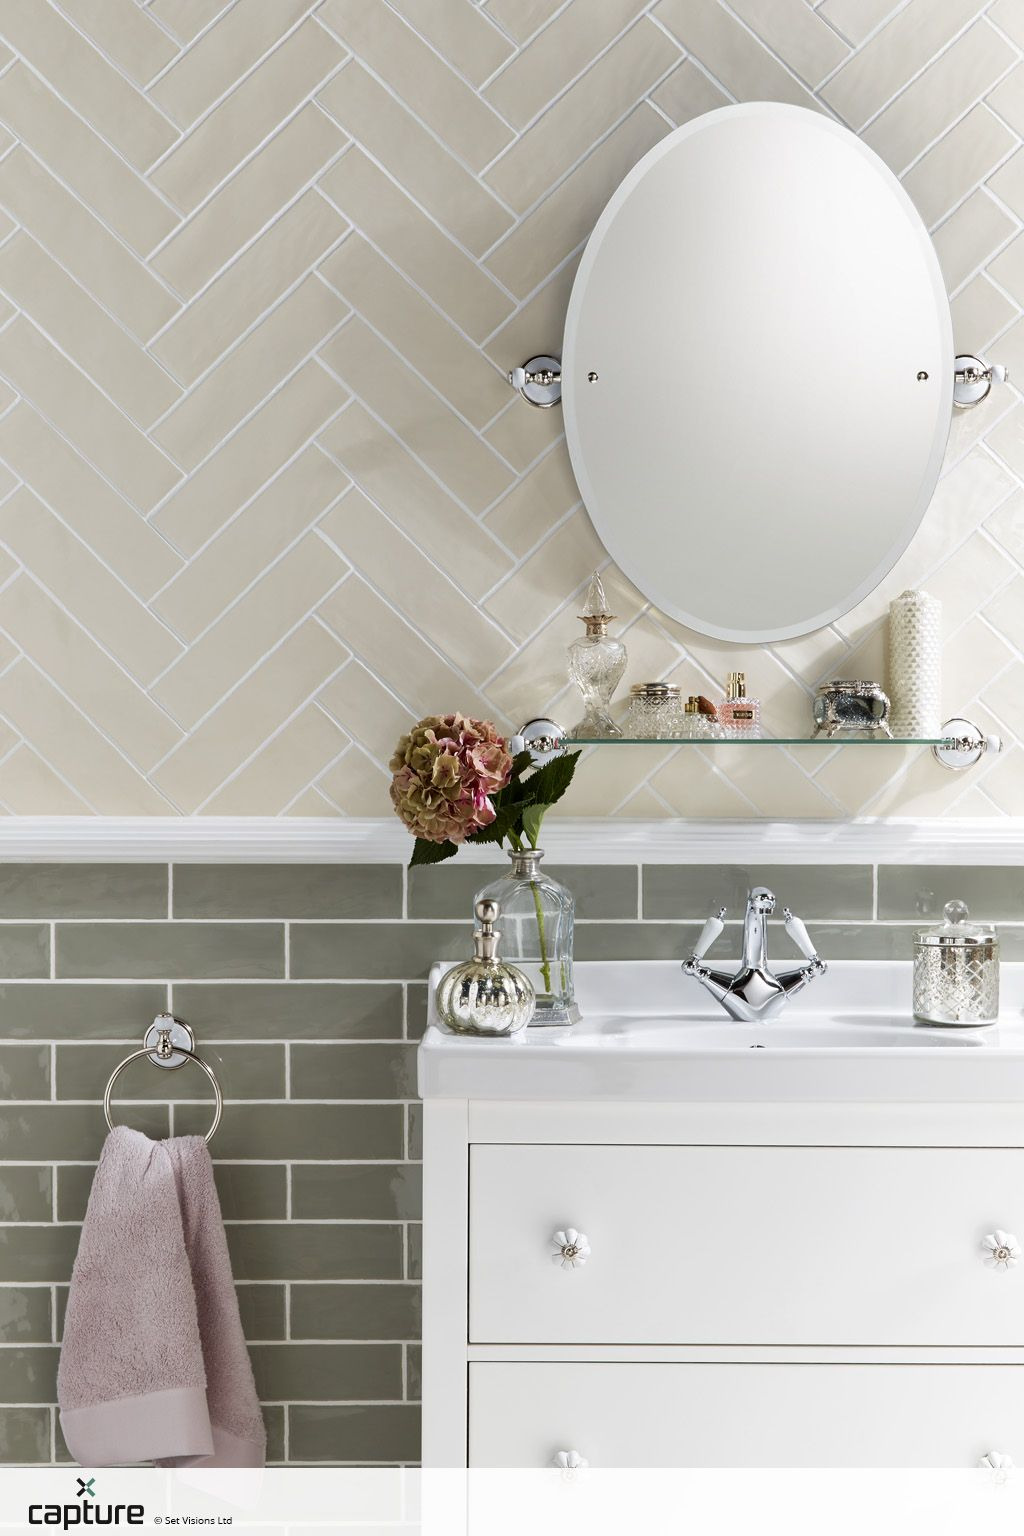 Bathroom Tiles Laying Design tile inspiration for the bathroom. soft cream tiles laid in a